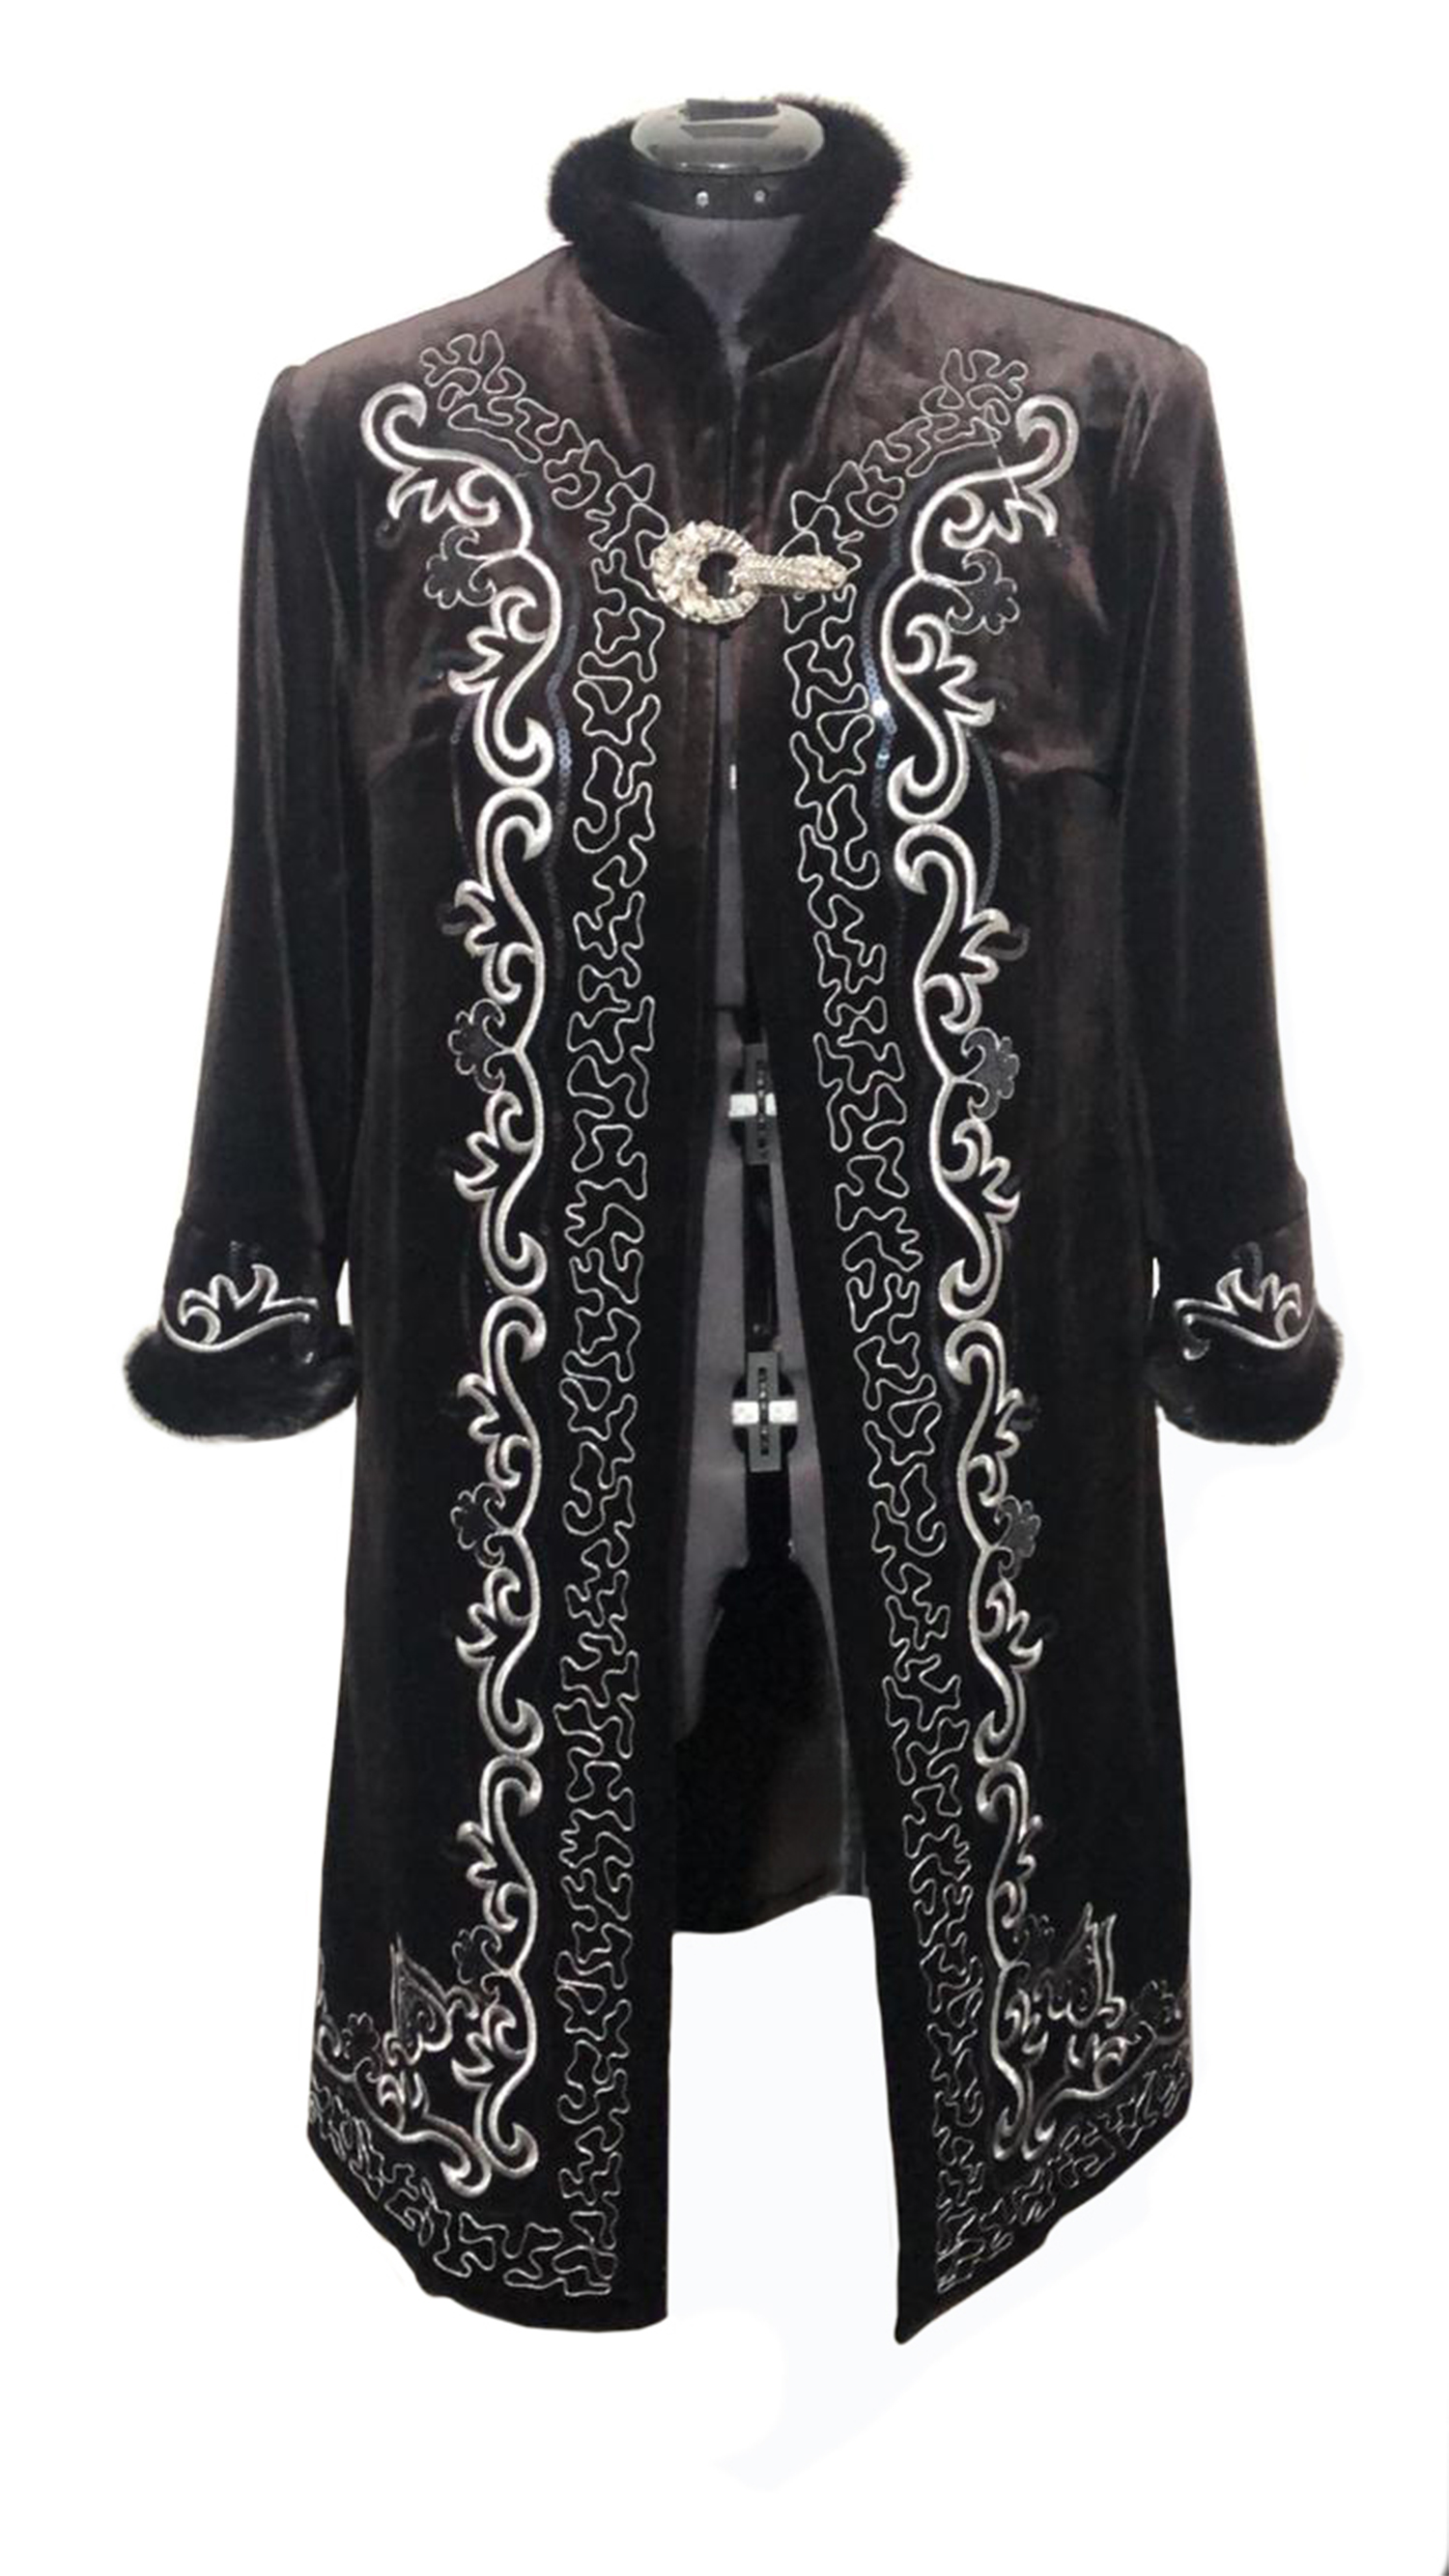 Woman Winter Warming Clothes With Embroidered Ornaments Design